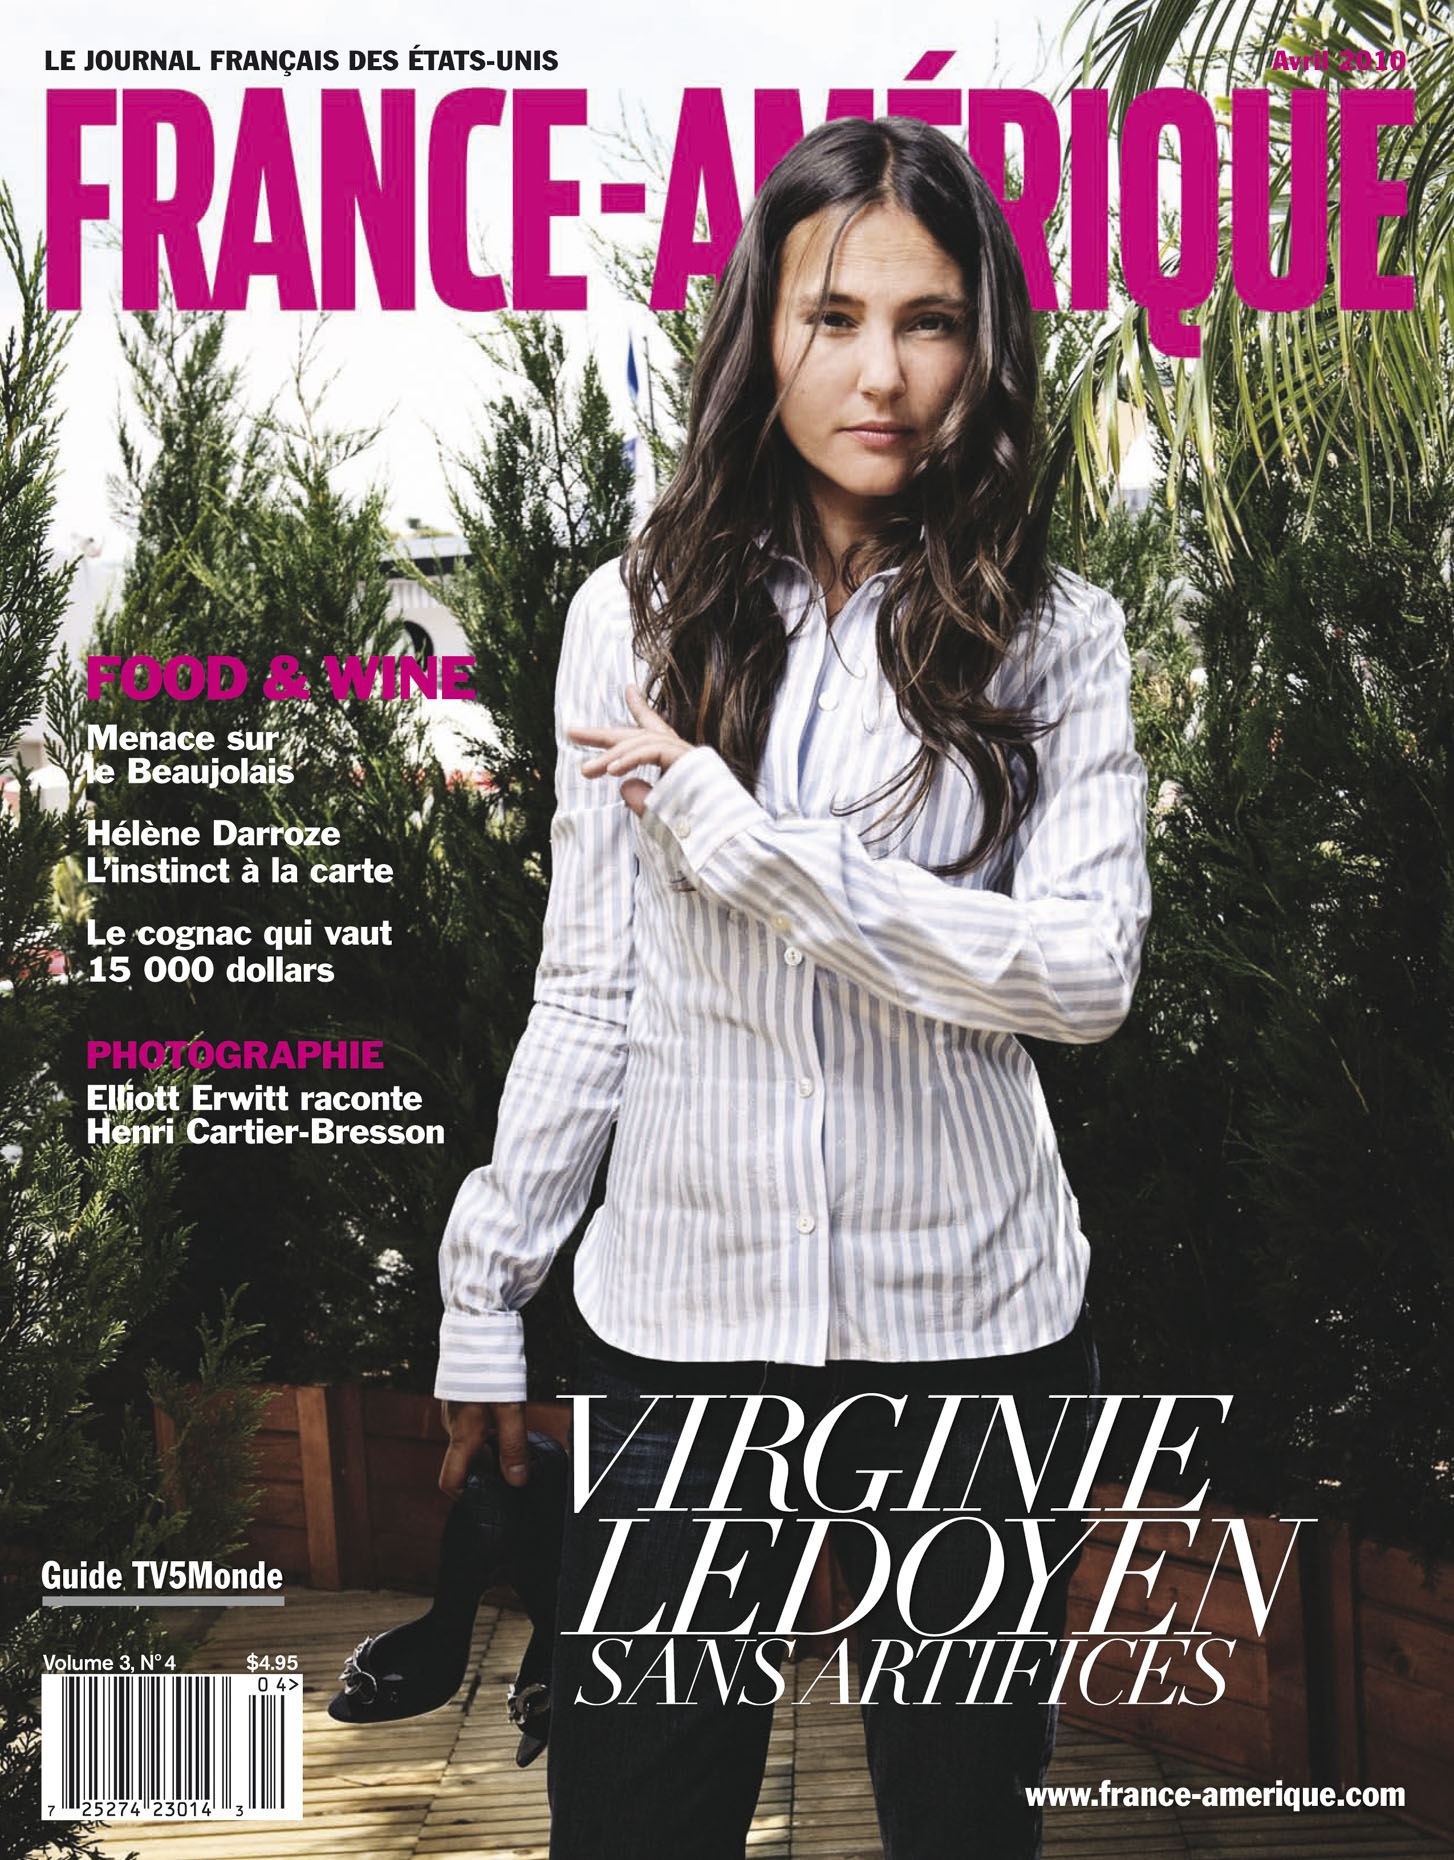 09-France Amerique - Virginie Ledoyen